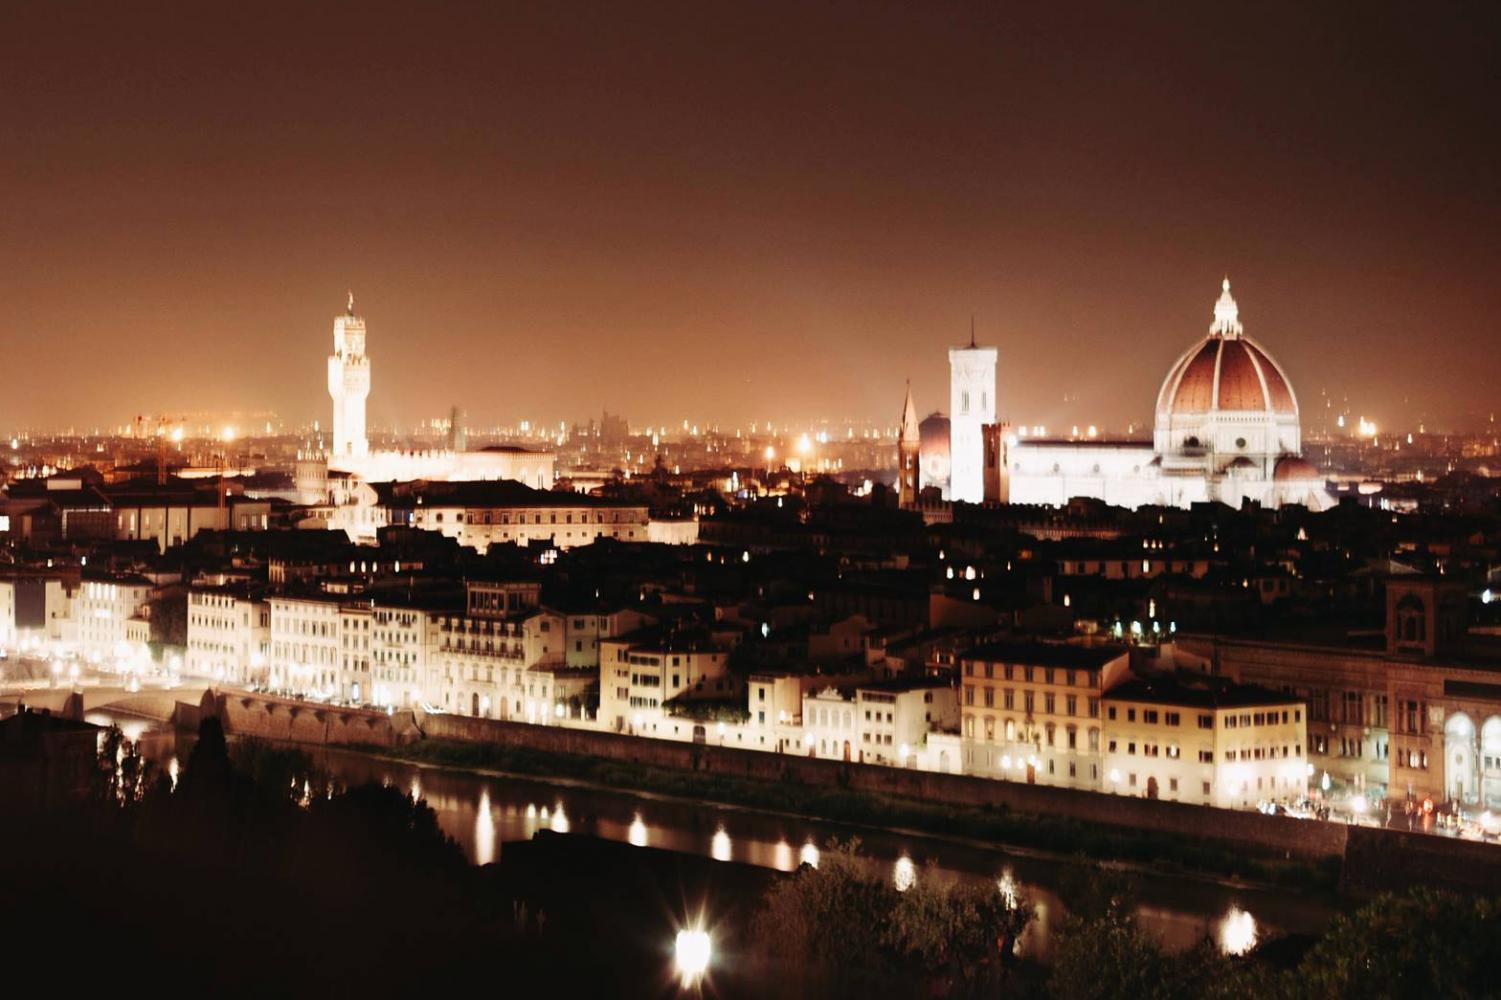 Overlooking Florence, Italy at night.